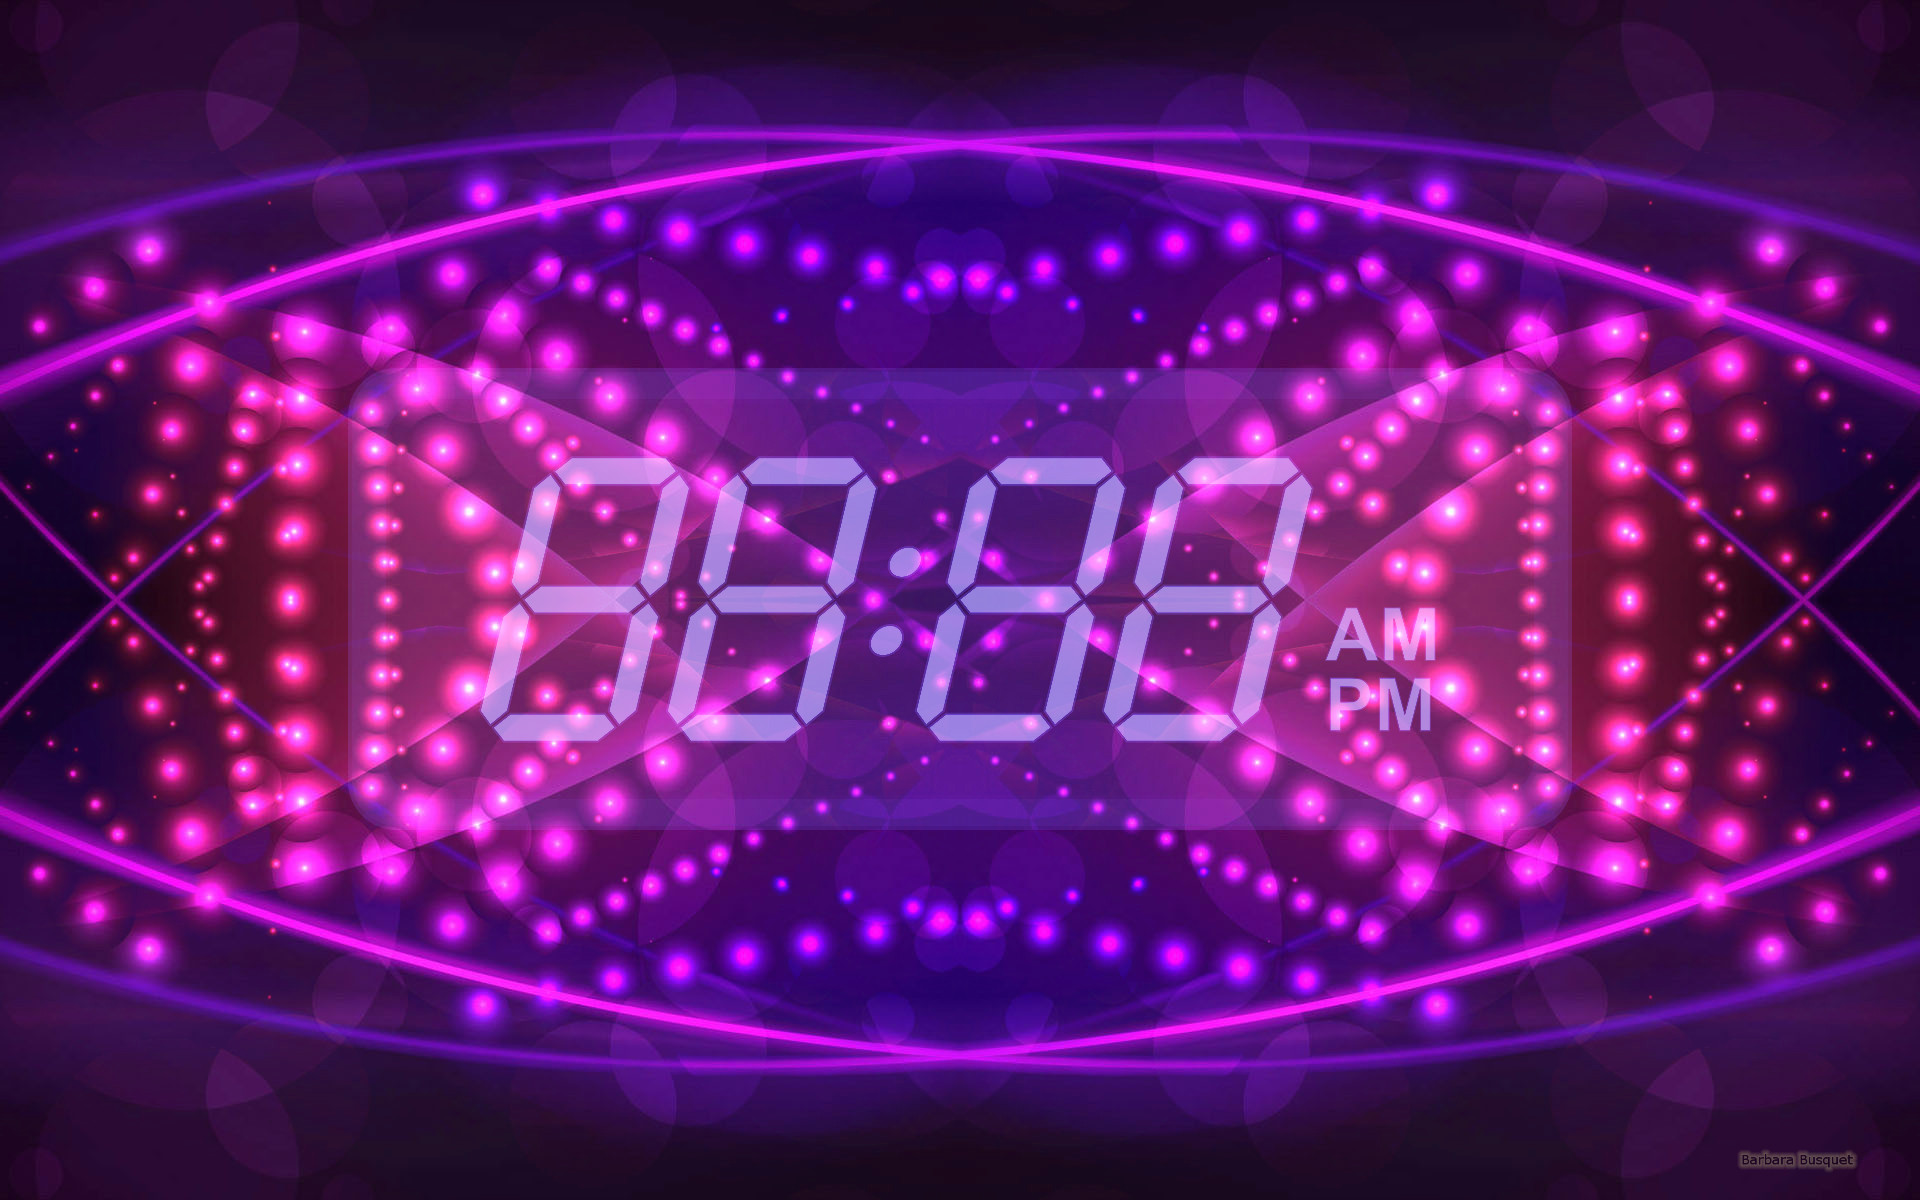 Patrician Amber Inch Salad Plate X also Hd Wallpaper Digital Clock On Purple Pink Background furthermore New Rangoli Design further Msc Watervale Dock Grayscale Edit additionally Dreambook. on s spiral border green